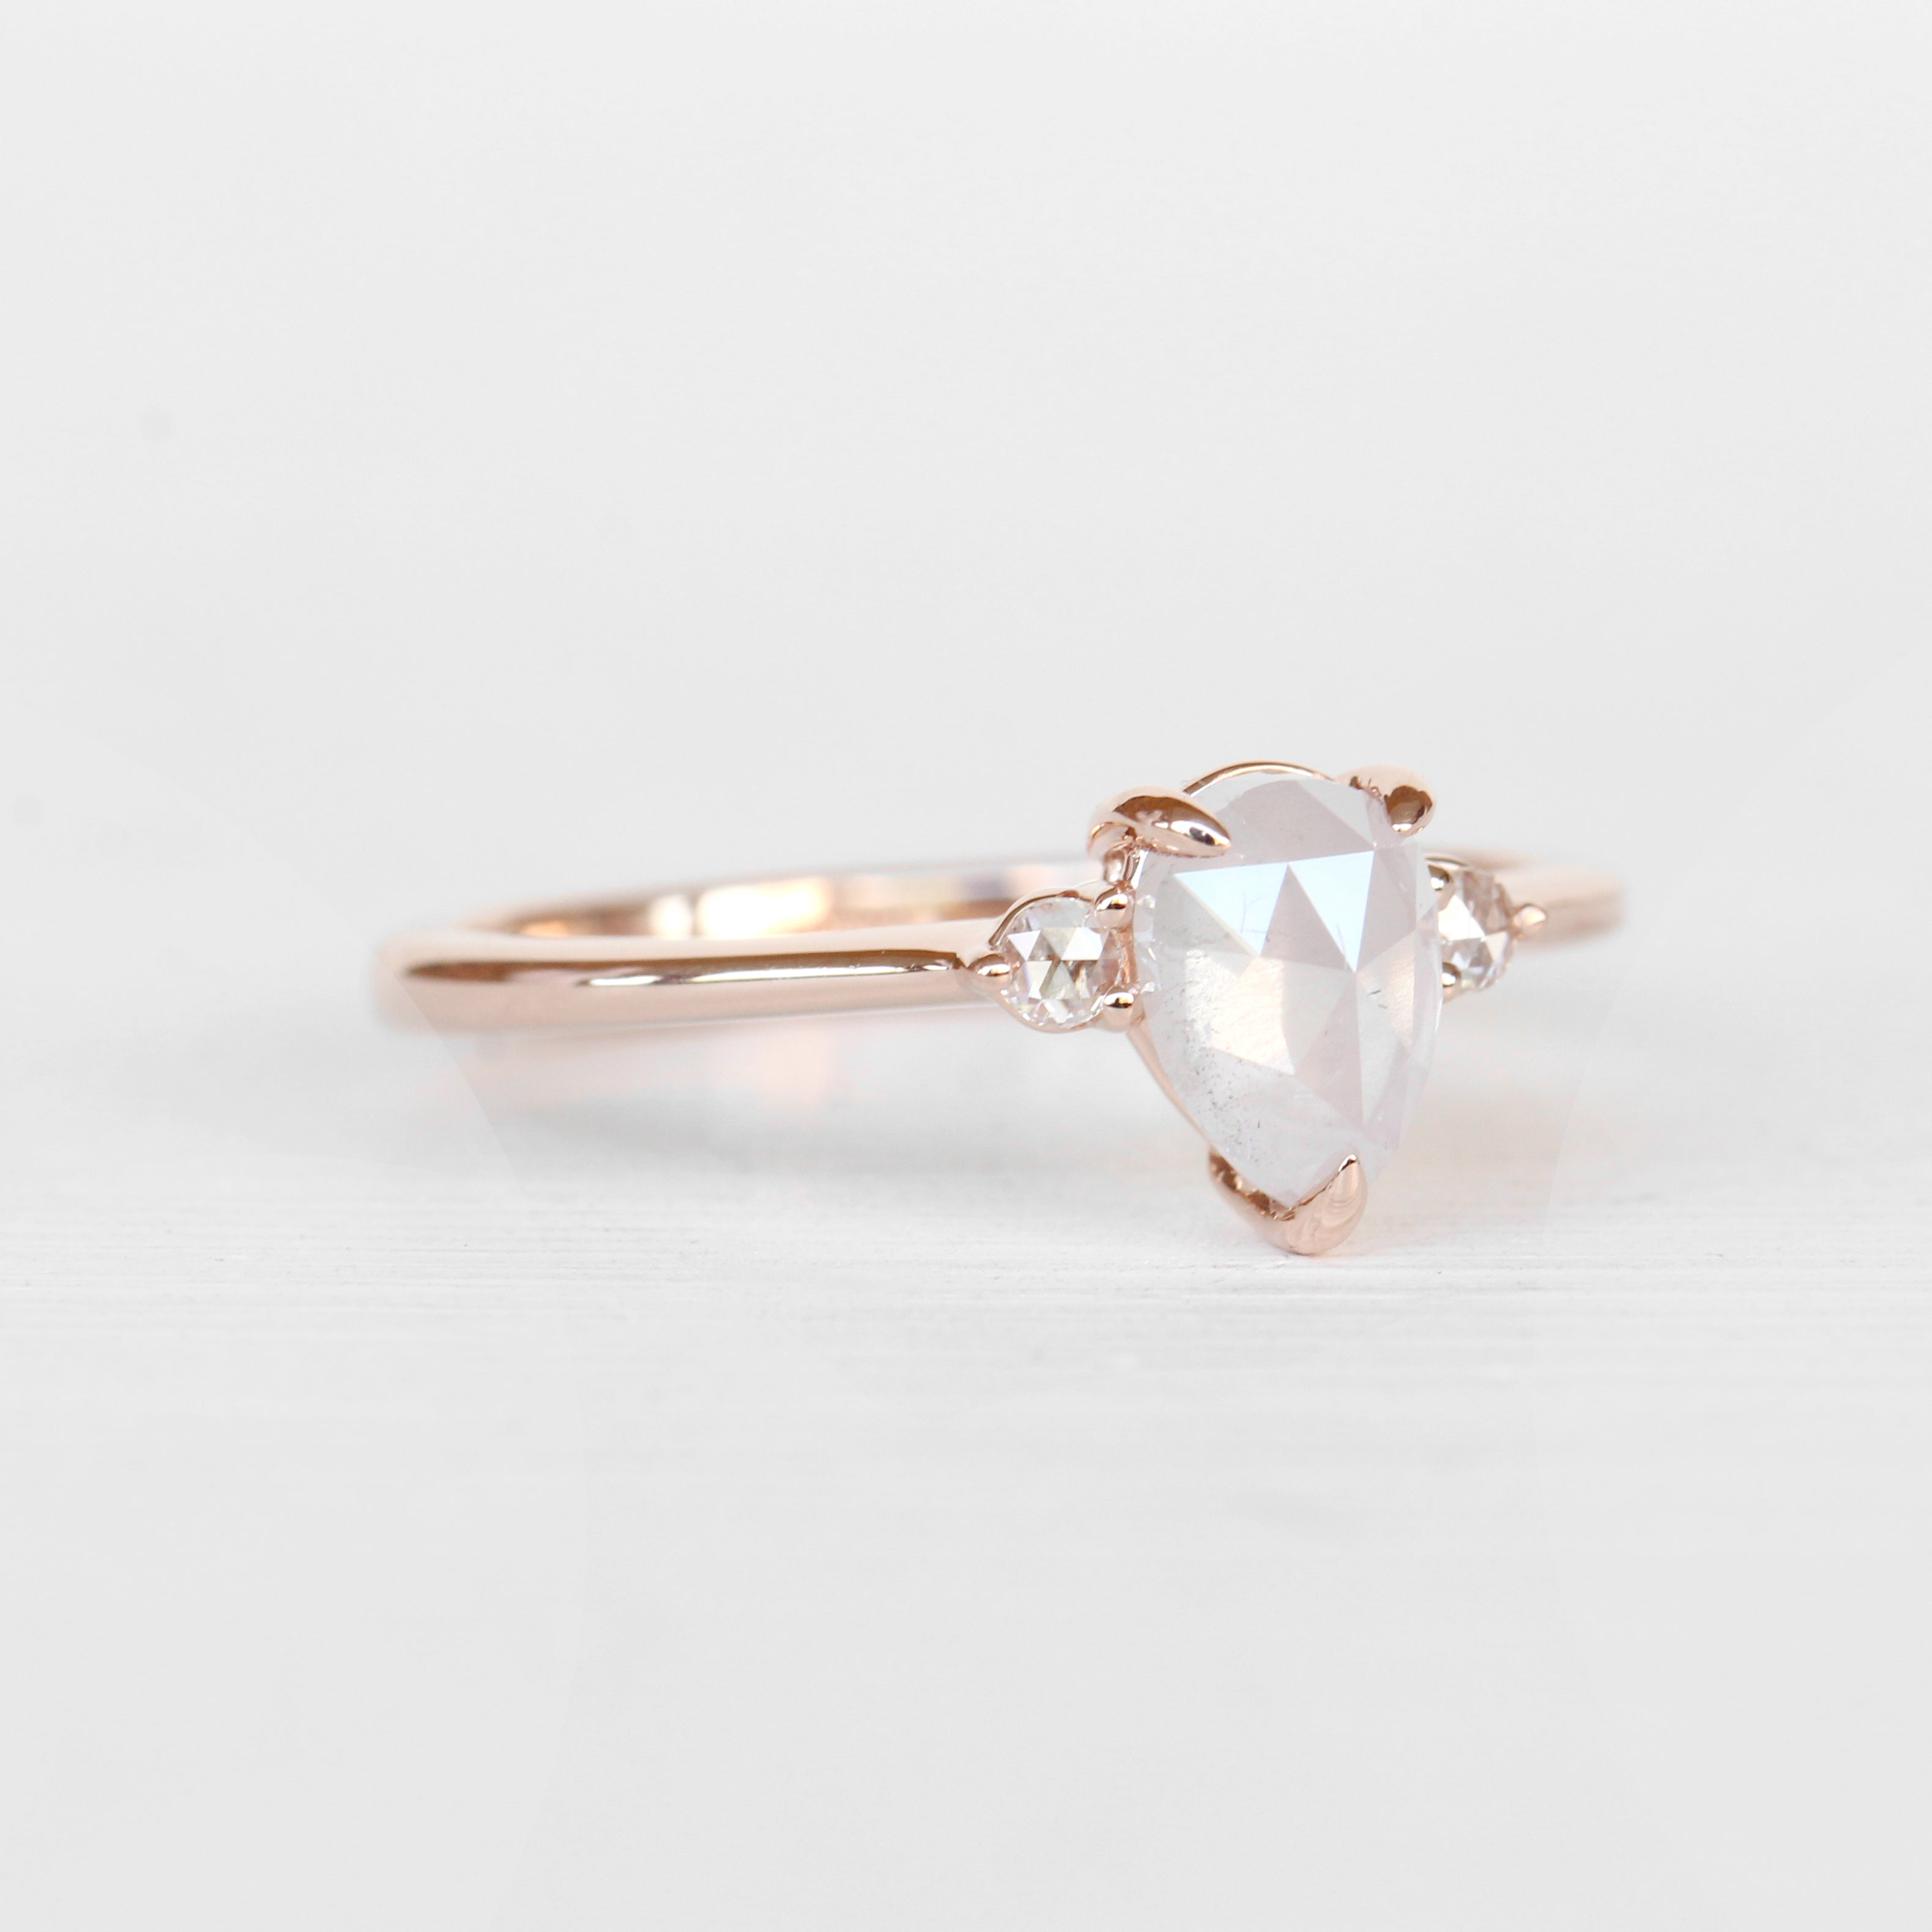 Drea Ring with a .91 ct Misty White Diamond in 10k Rose Gold - Ready to Size and Ship